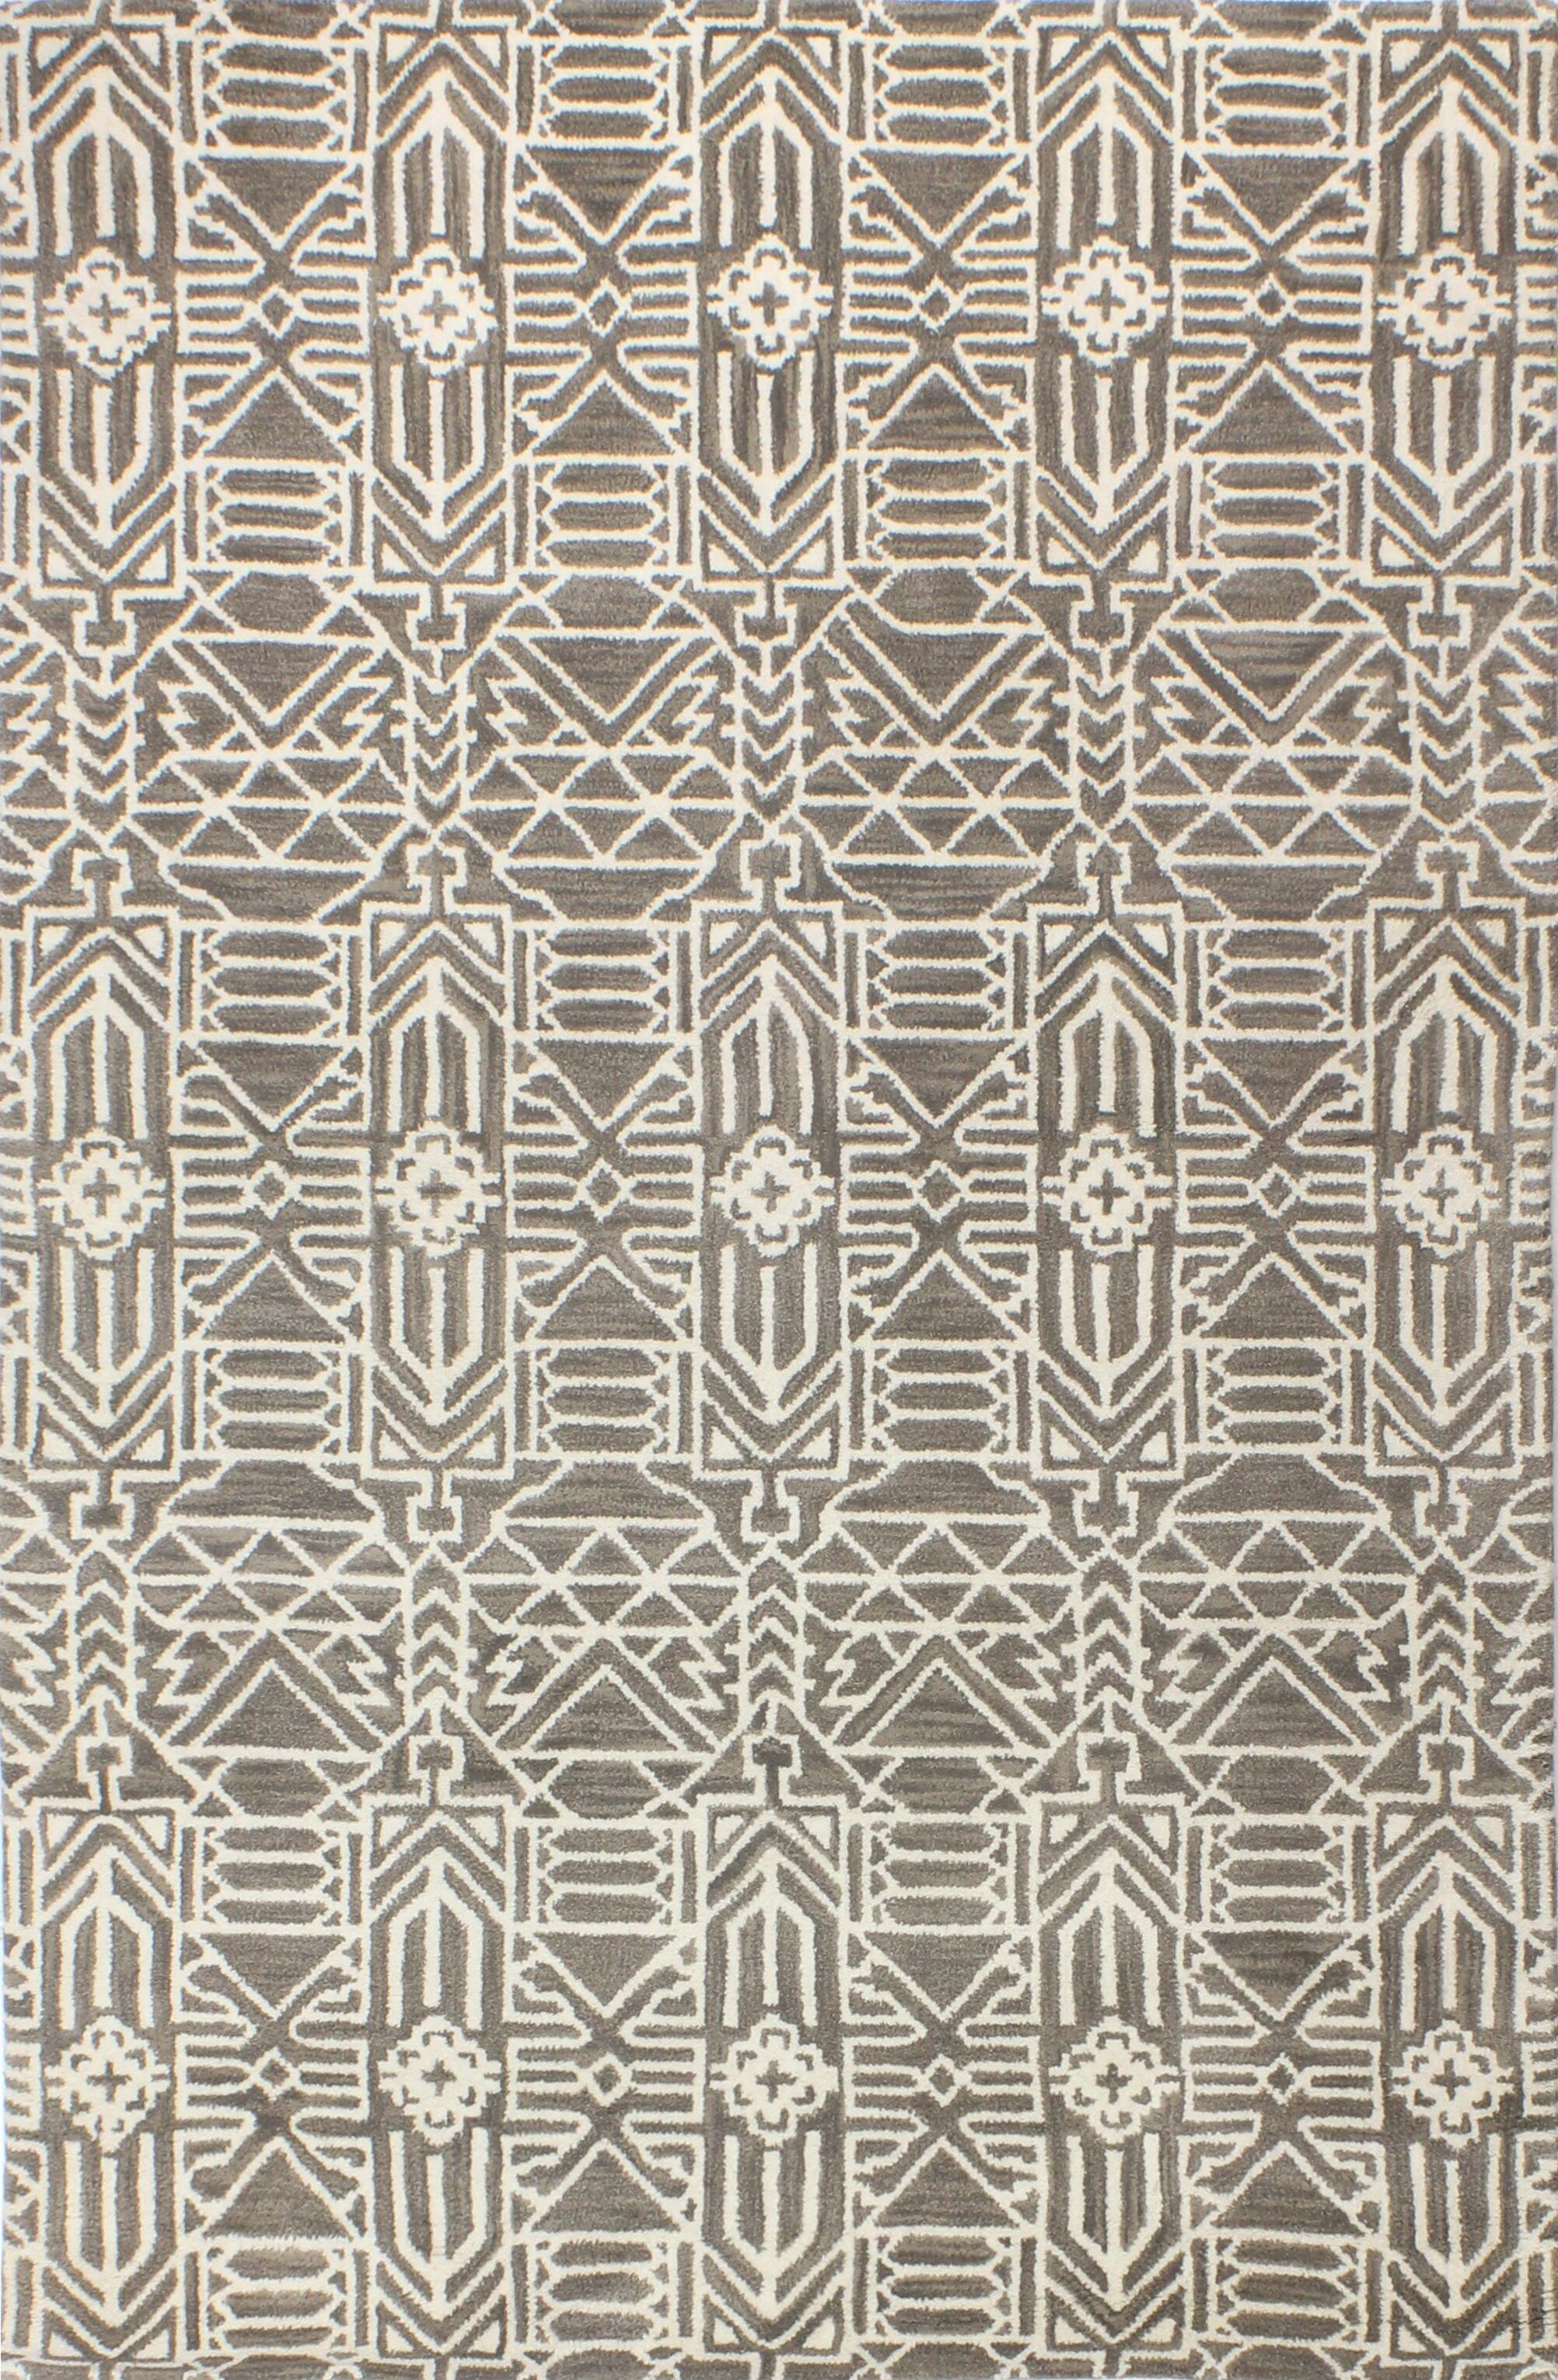 Lonergan Hand-Woven Wool Taupe Area Rug Rug Size: Rectangle 7'6